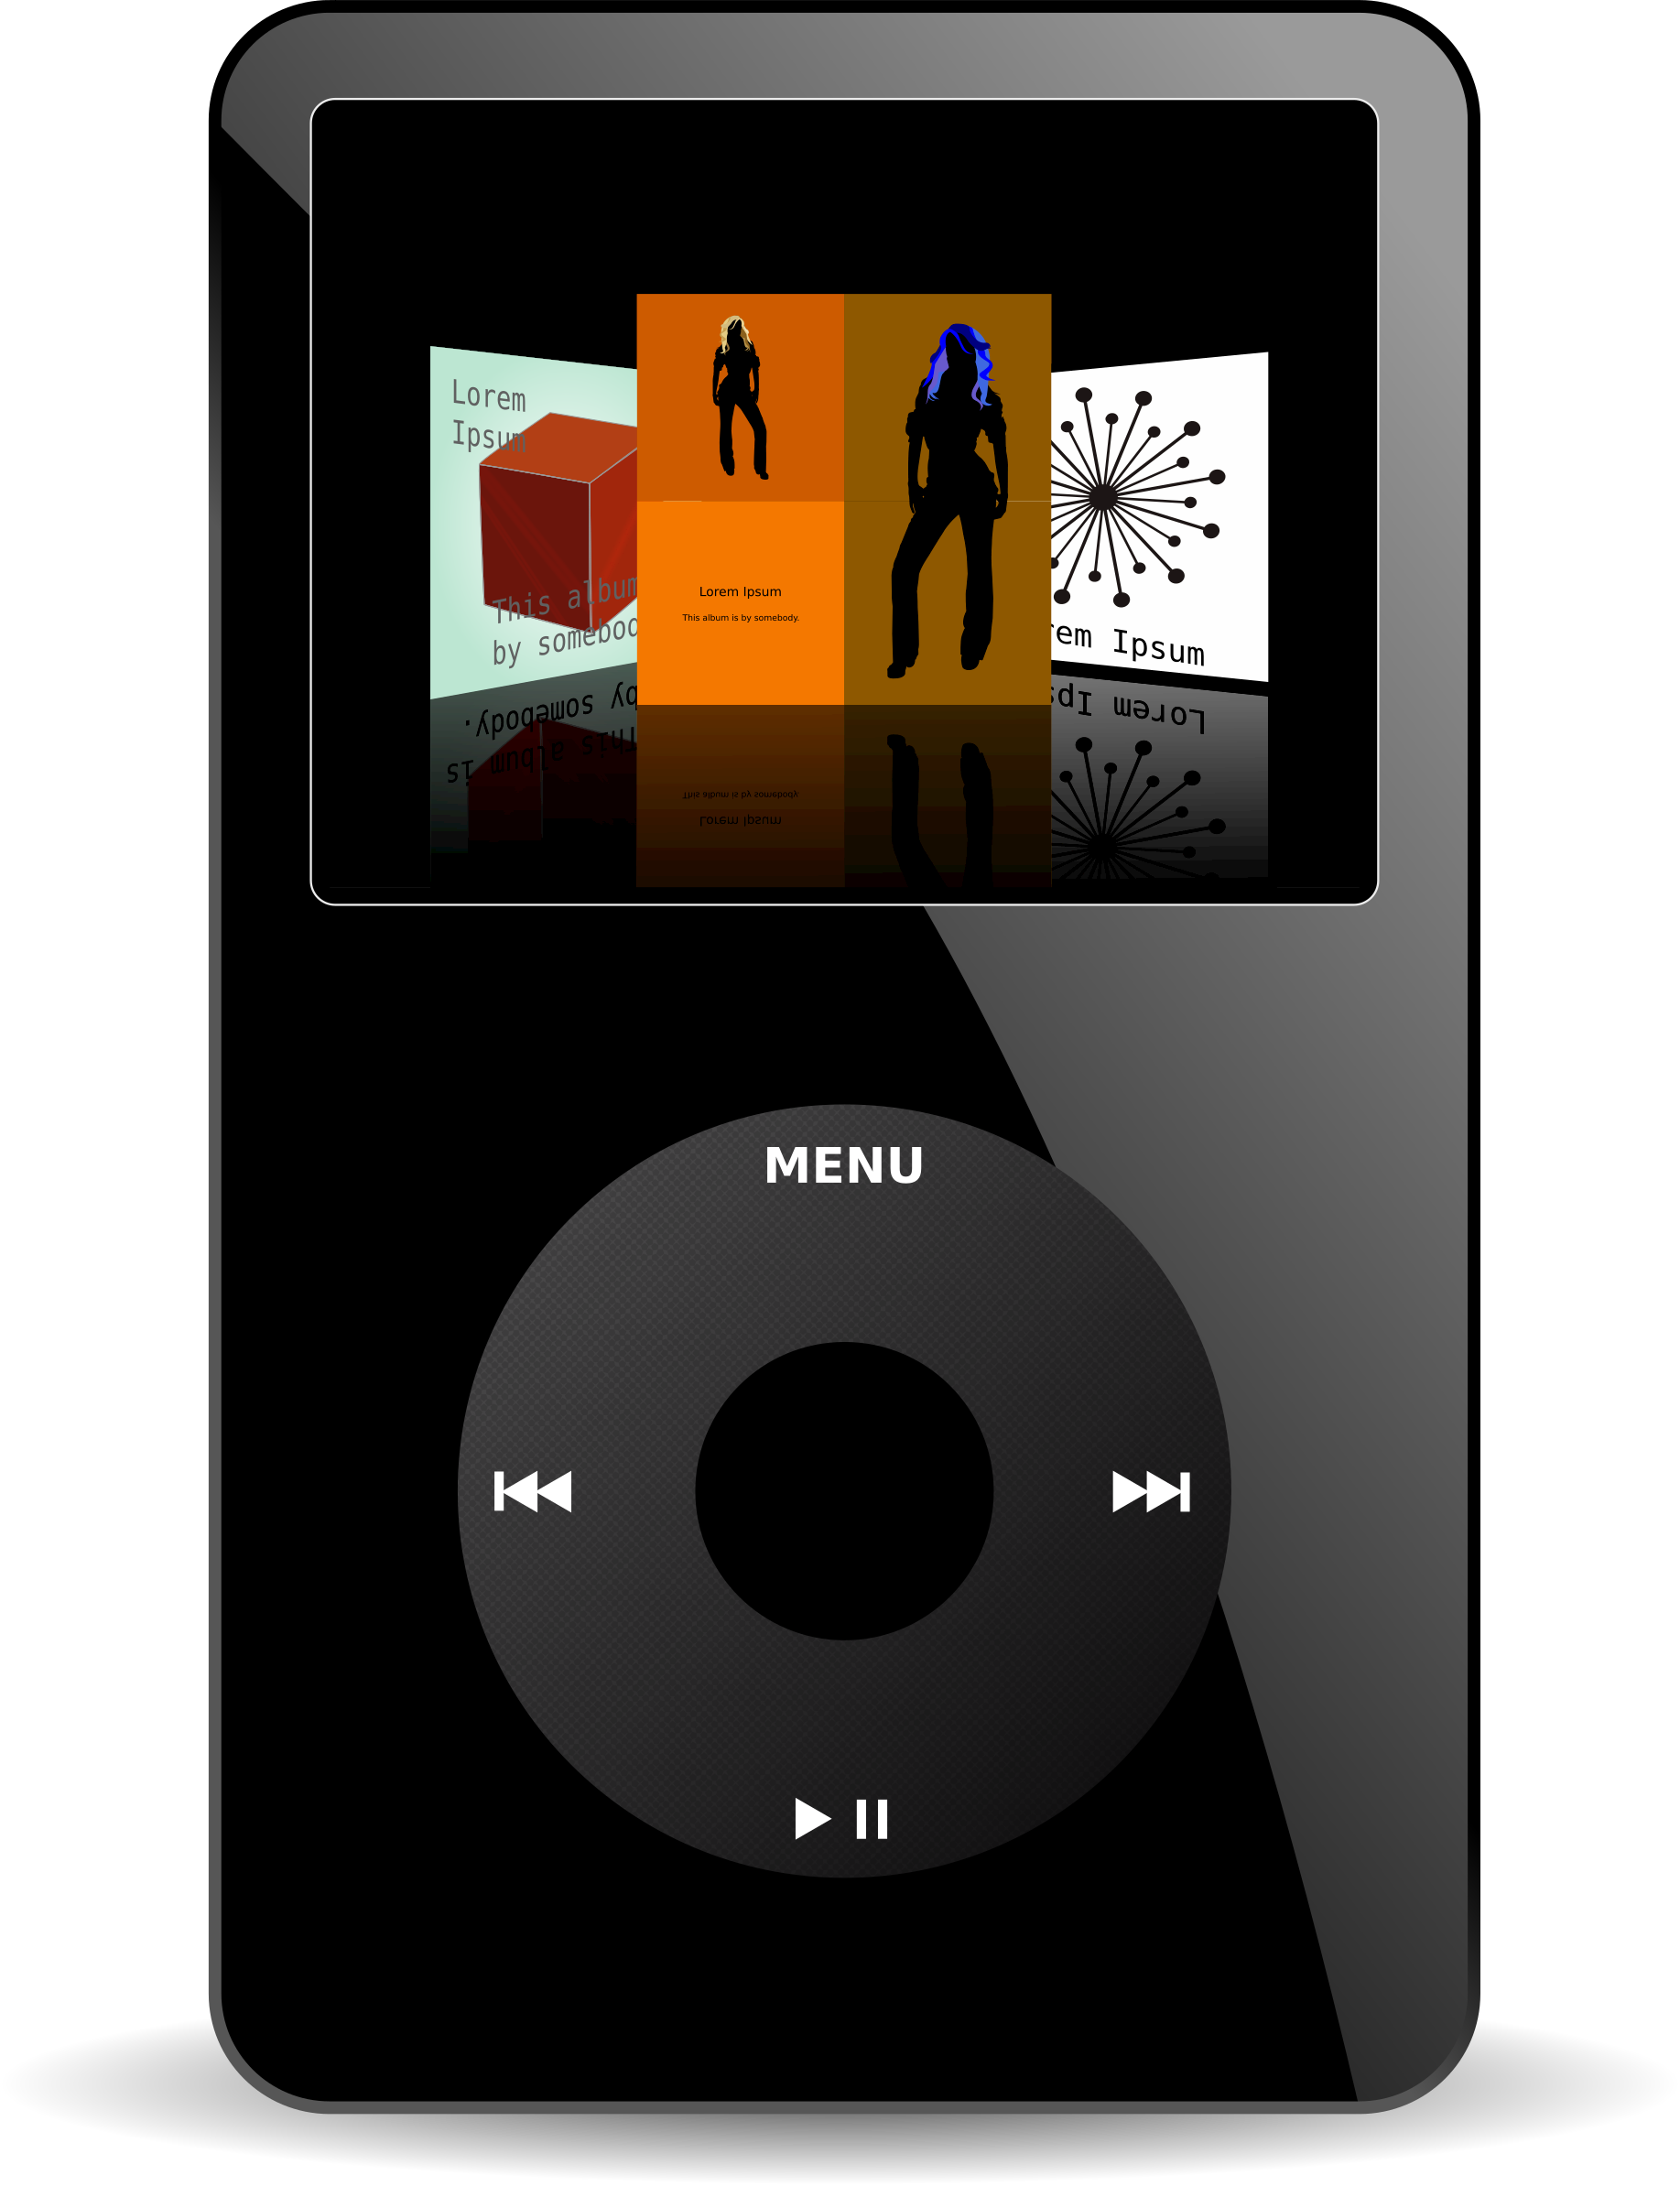 iPod MediaPlayer by flomar